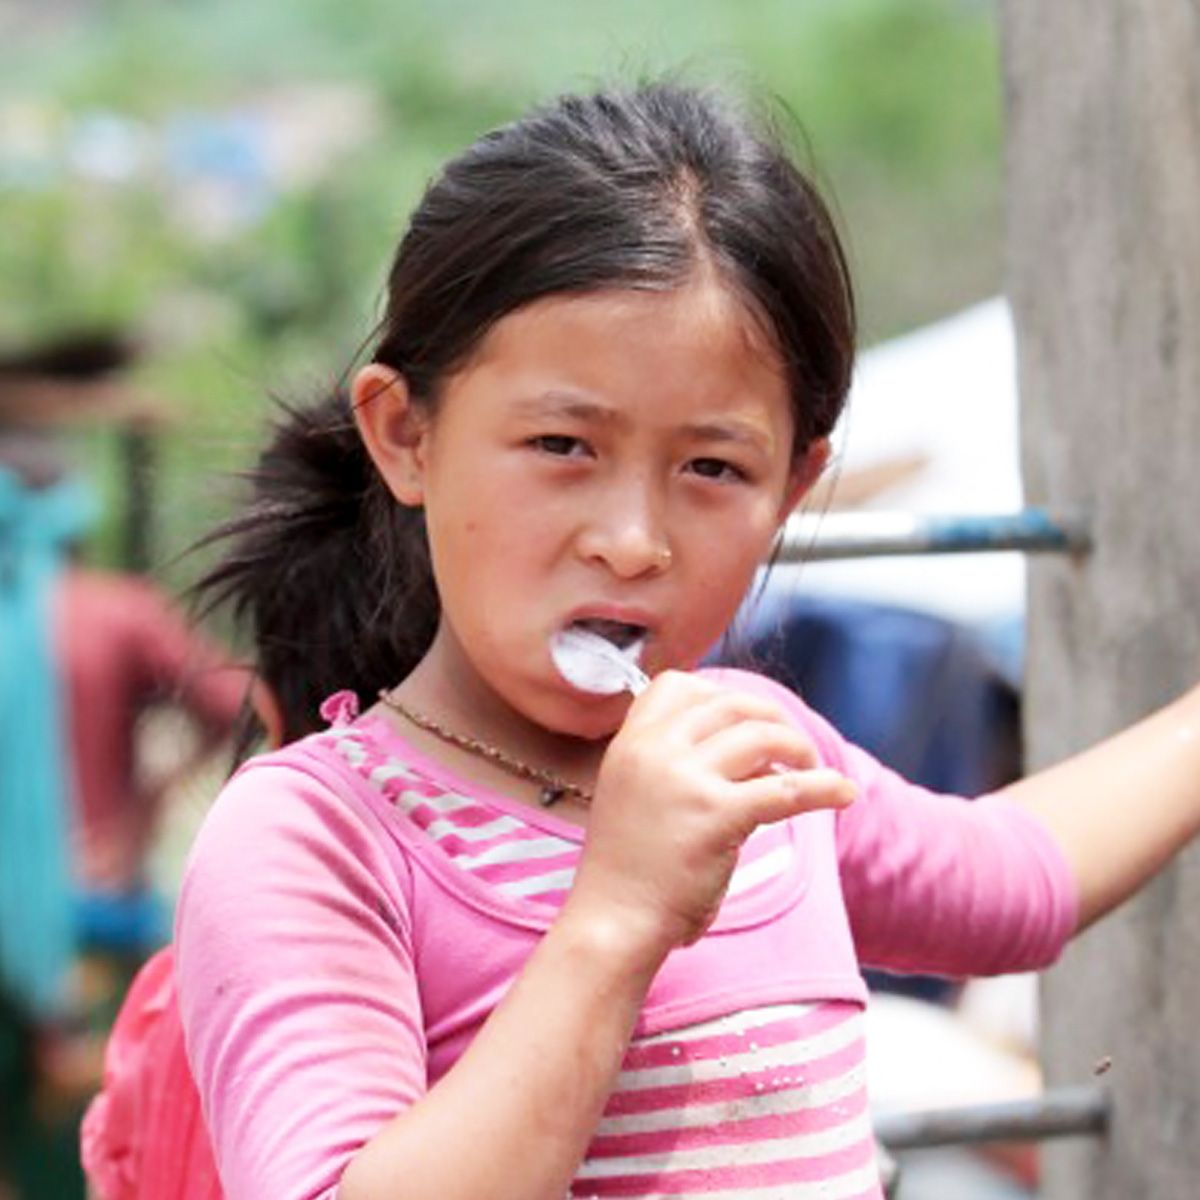 A TOOTHBRUSH MAY JUST BE A BIT OF PLASTIC AND NYLON, but after the earthquakes in Nepal, they are part of life-saving hygiene kits!  Palm Valley Pediatric Dentistry!